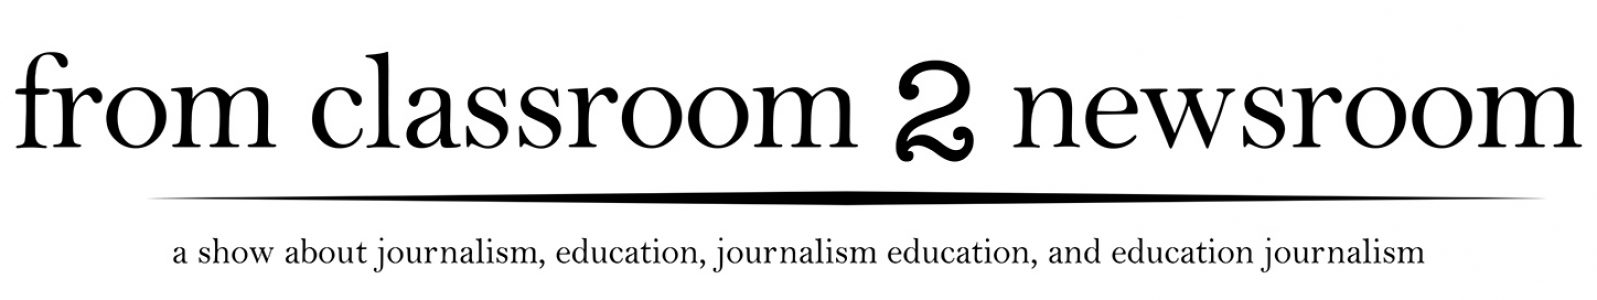 From Classroom to Newsroom